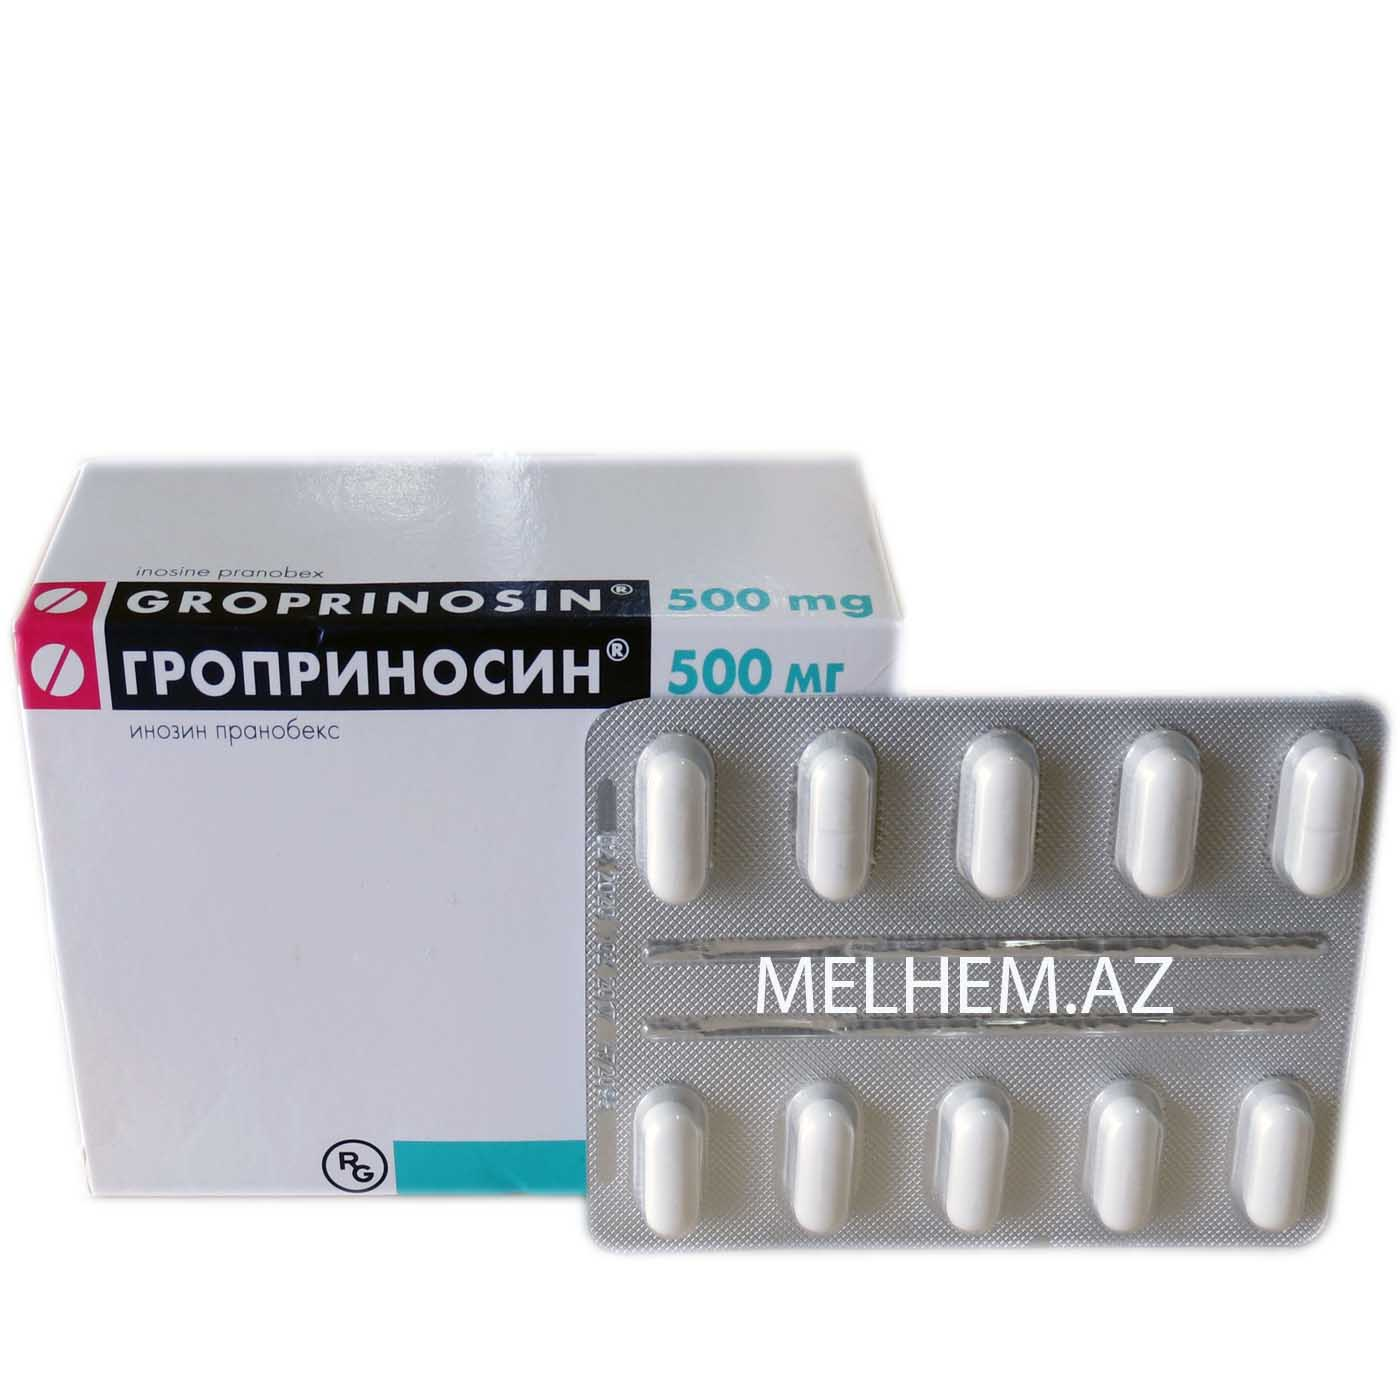 QROPRINOSIN 500 MG